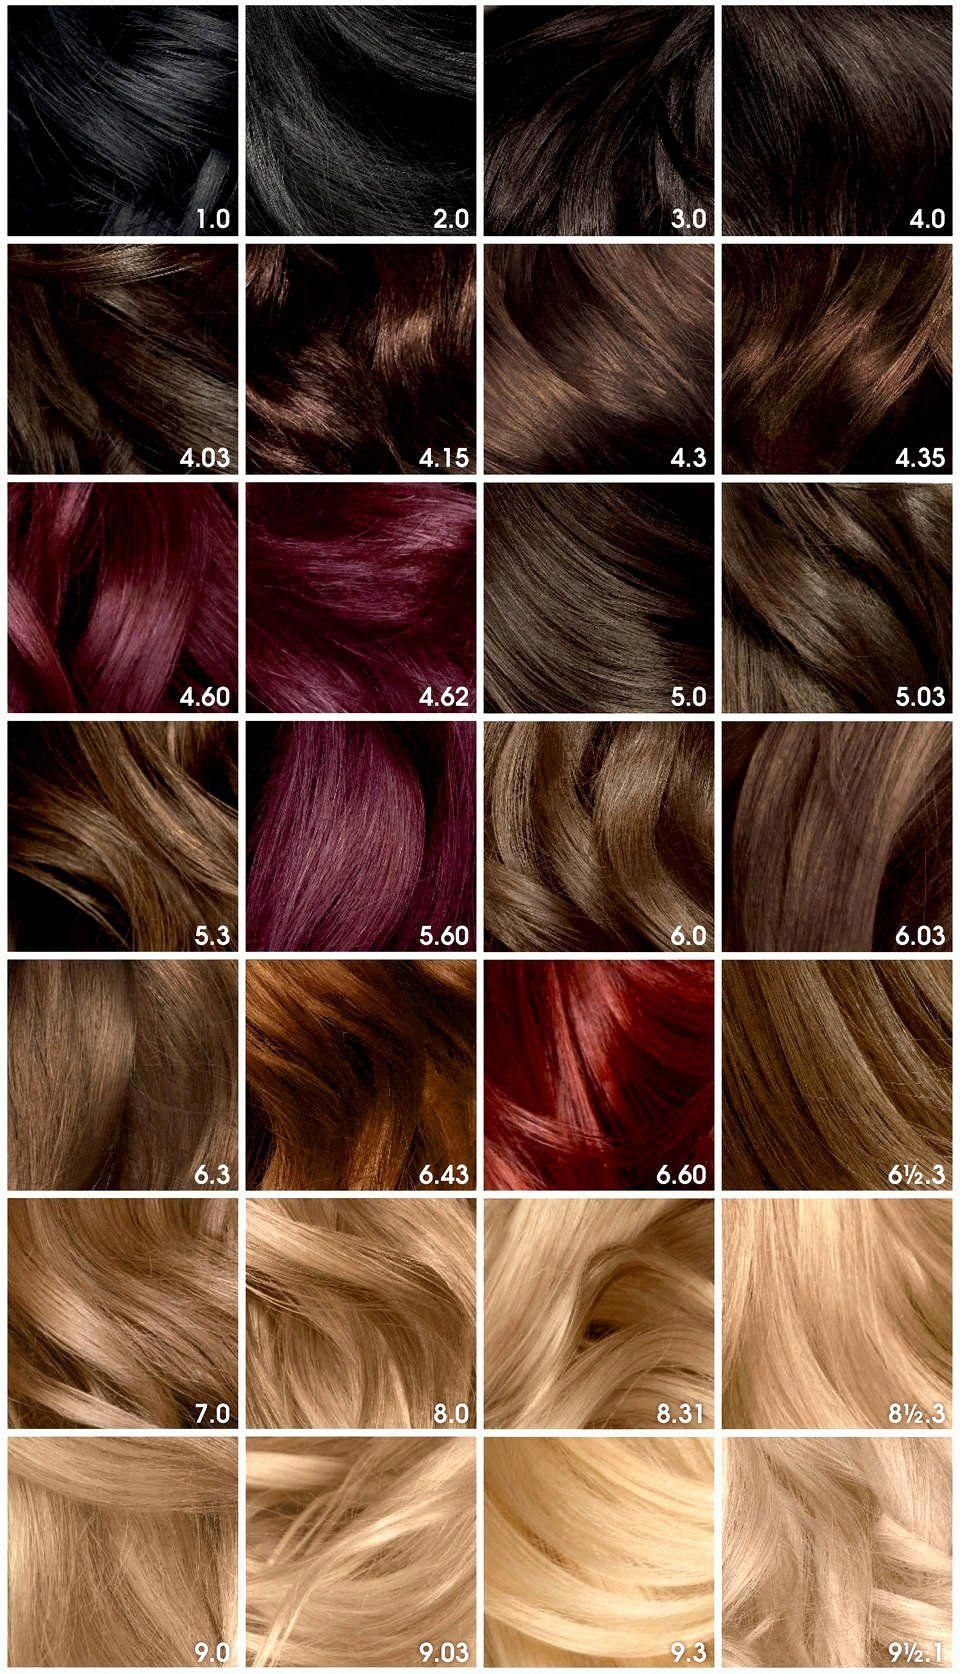 Coloring Colors Lovely Different Color Hair Highlights Luxury Short Hairstyles With Skincaretipsathome In 2020 Olia Hair Color Garnier Hair Color Hair Color Chart